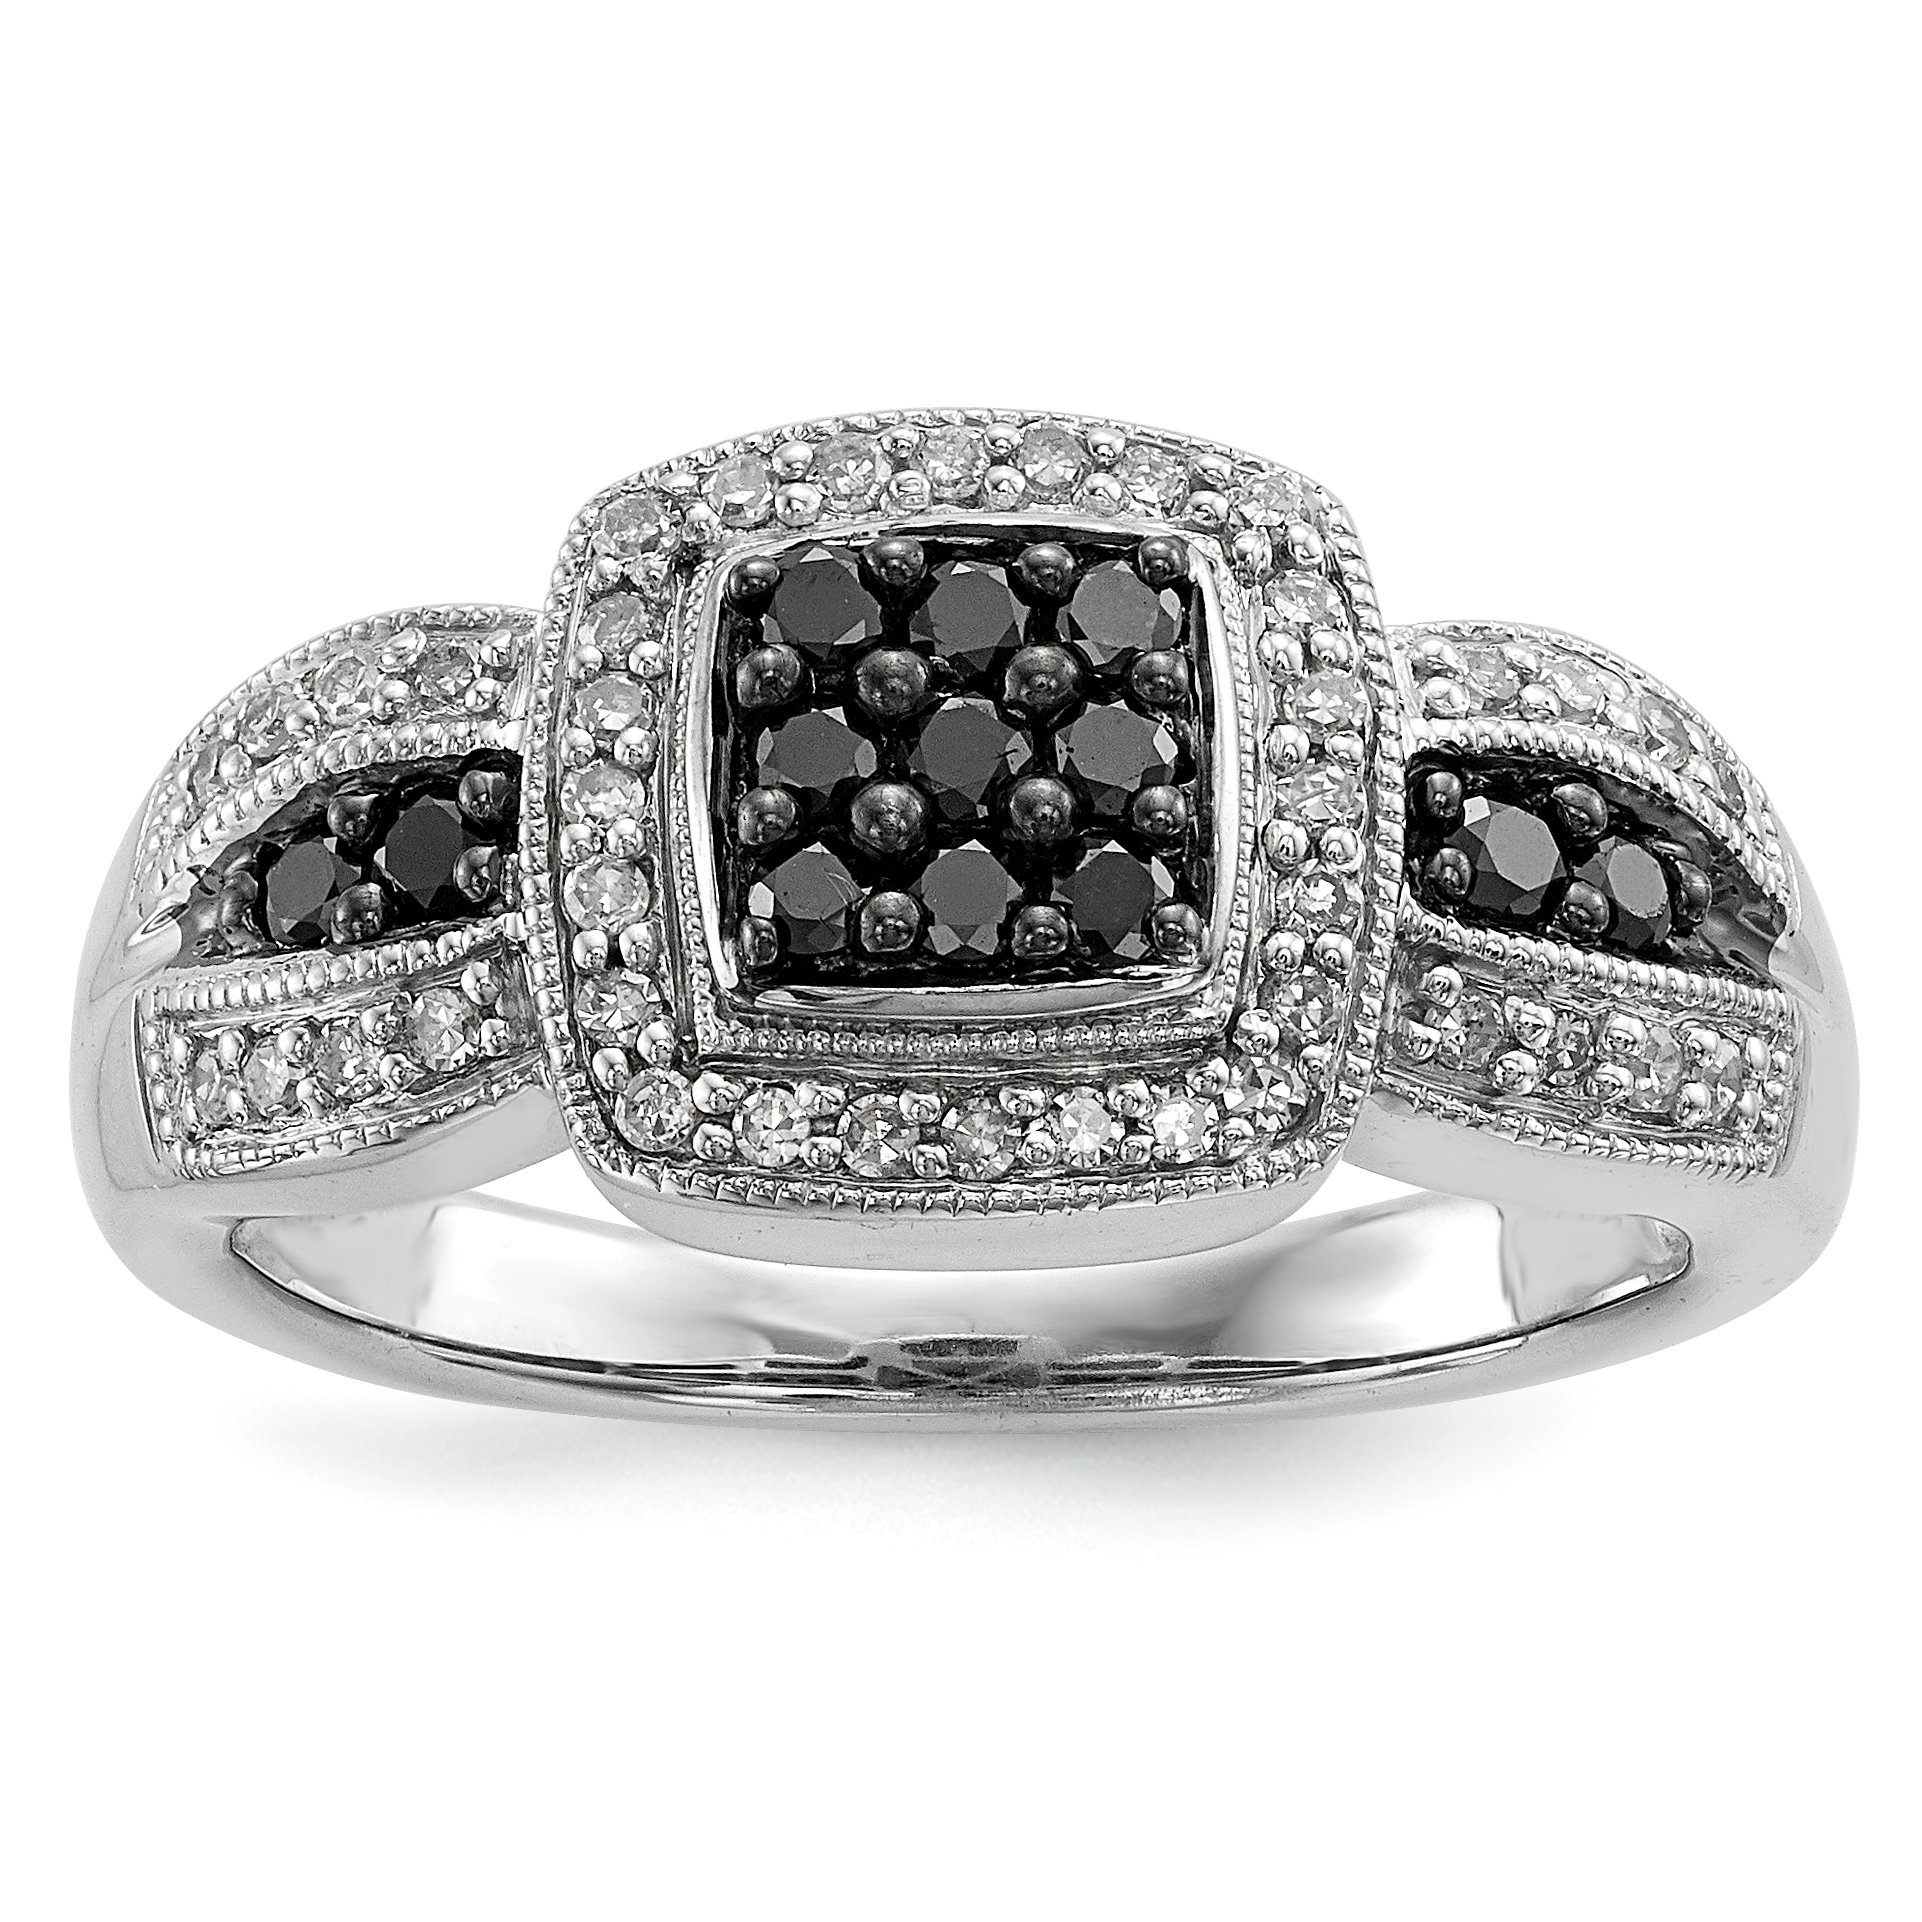 ICE CARATS 925 Sterling Silver Black Diamond Square Band Ring Size 7.00 Fine Jewelry Gift Set For Women Heart